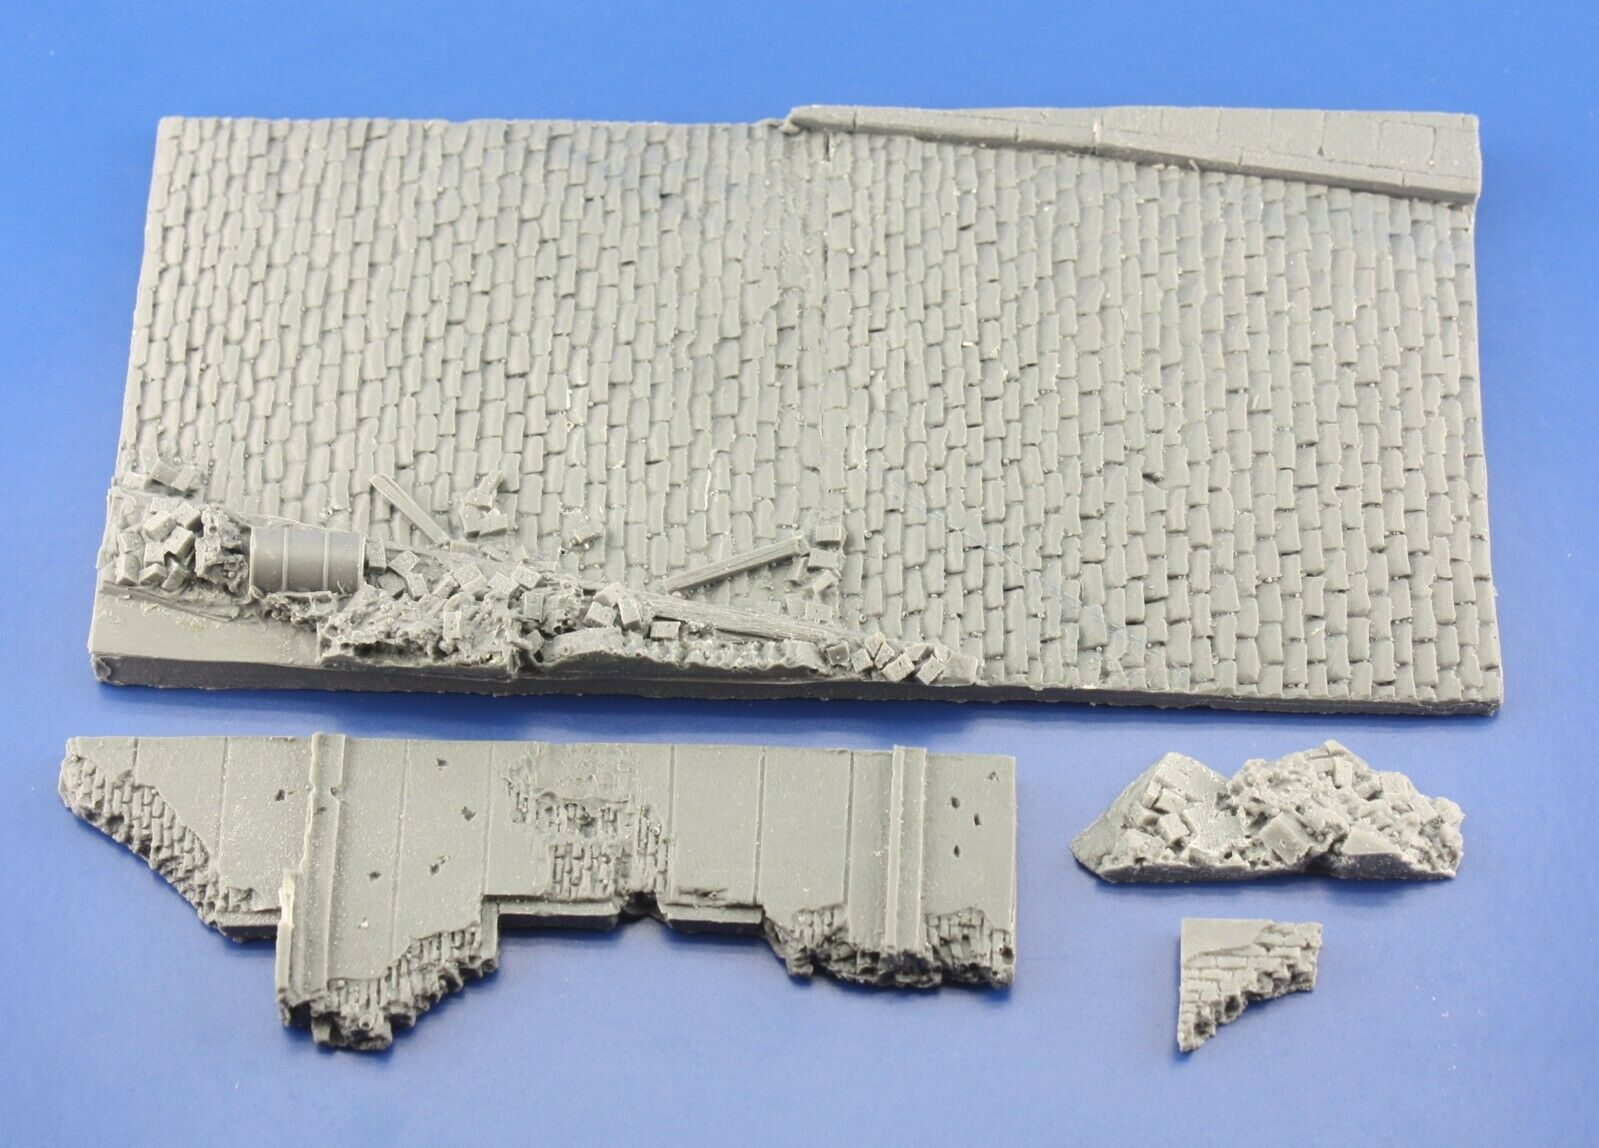 Redog 1/72/76 Street Ruins Scale Military Model Display Base/Small Diorama D15 - redoguk